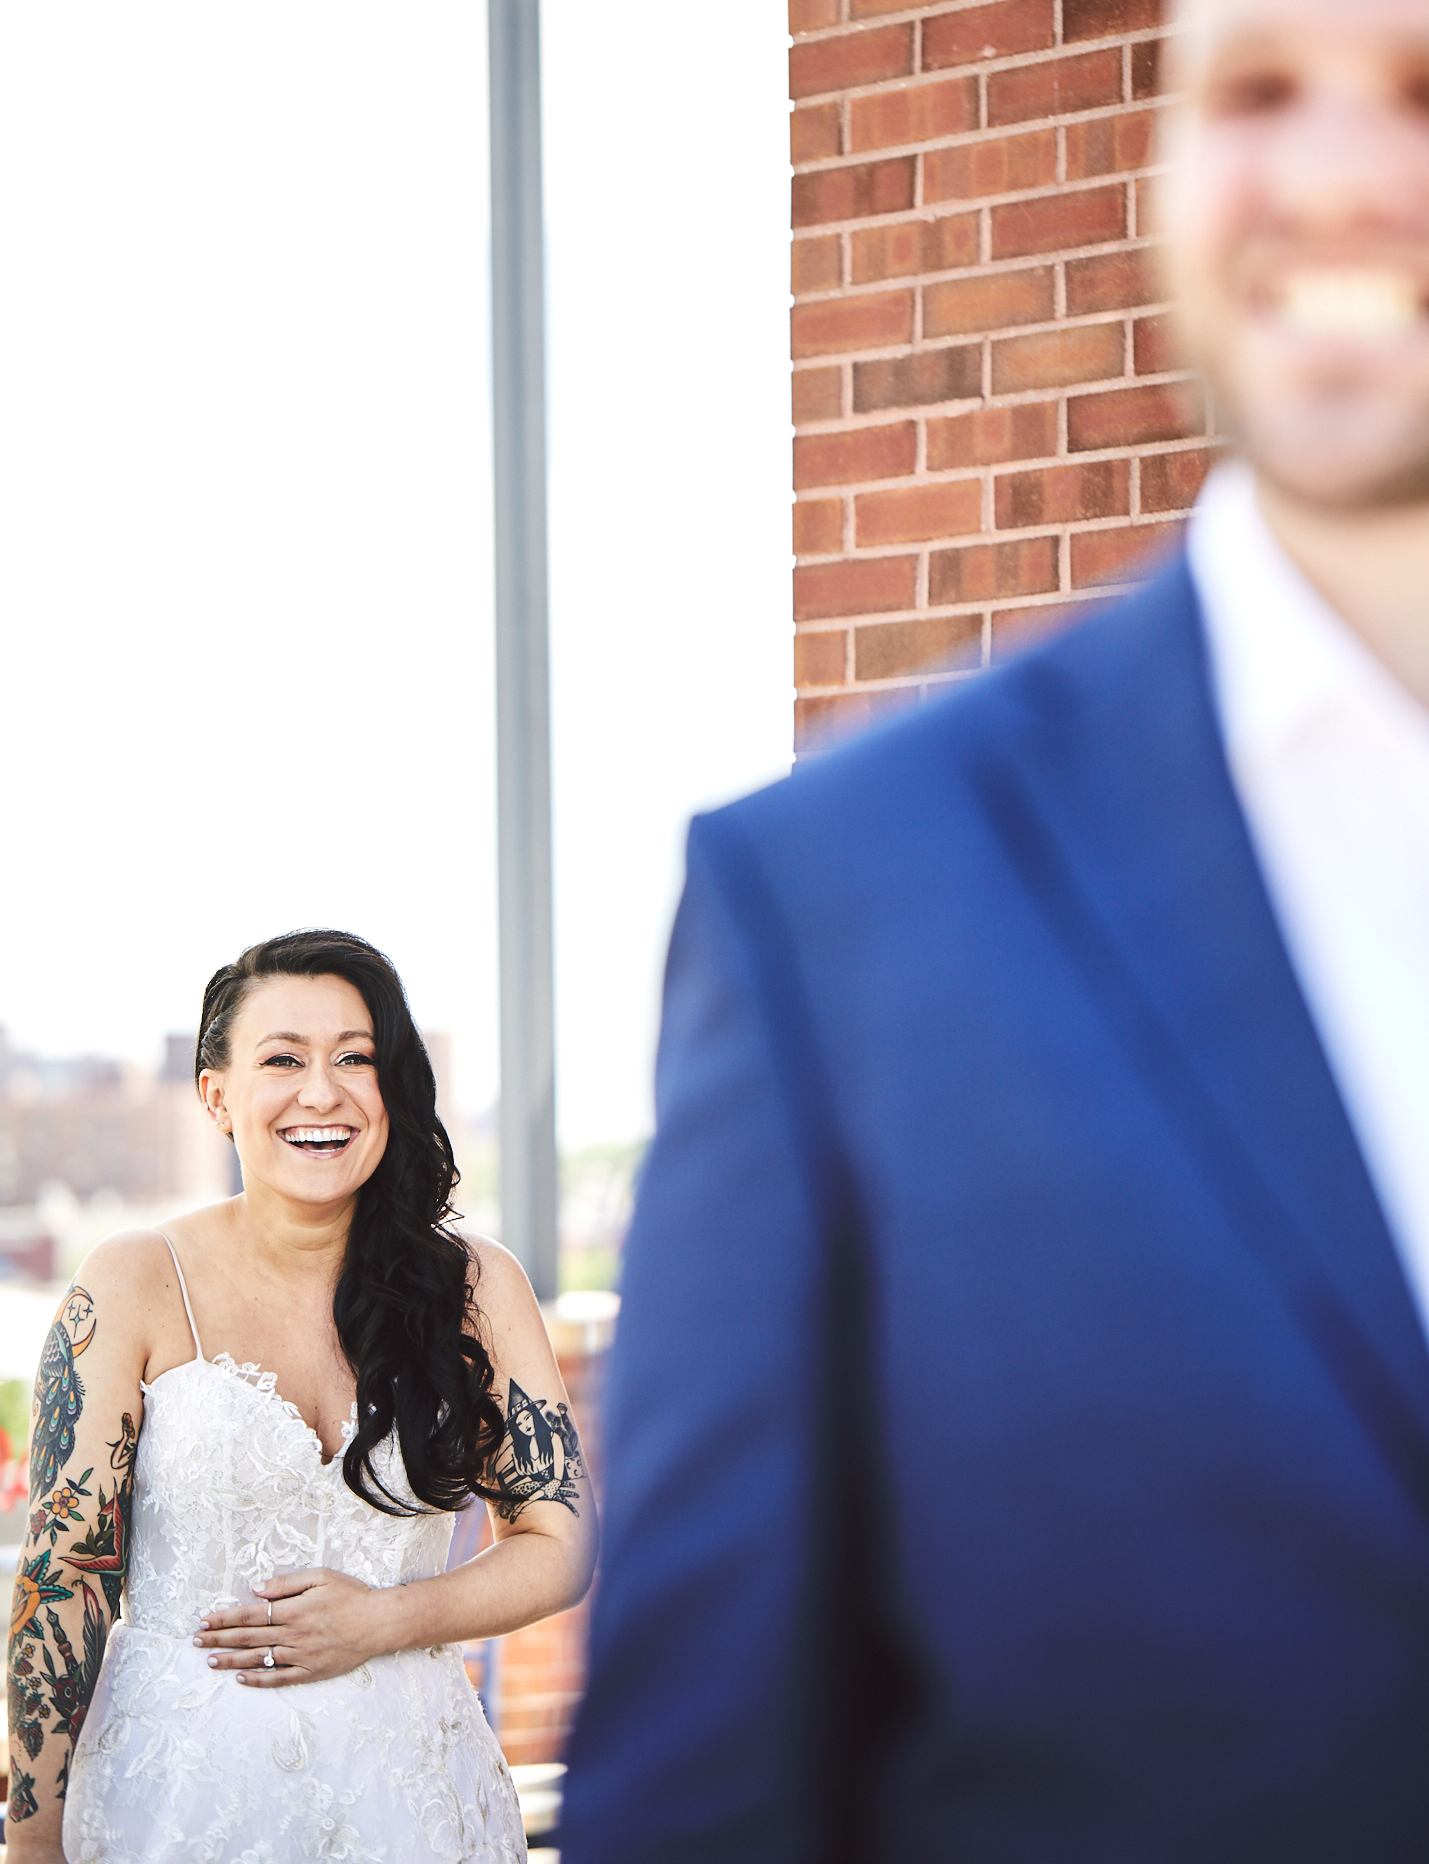 190518_SpringThreesBreweryWedding_By_BriJohnsonWeddings_0038.jpg